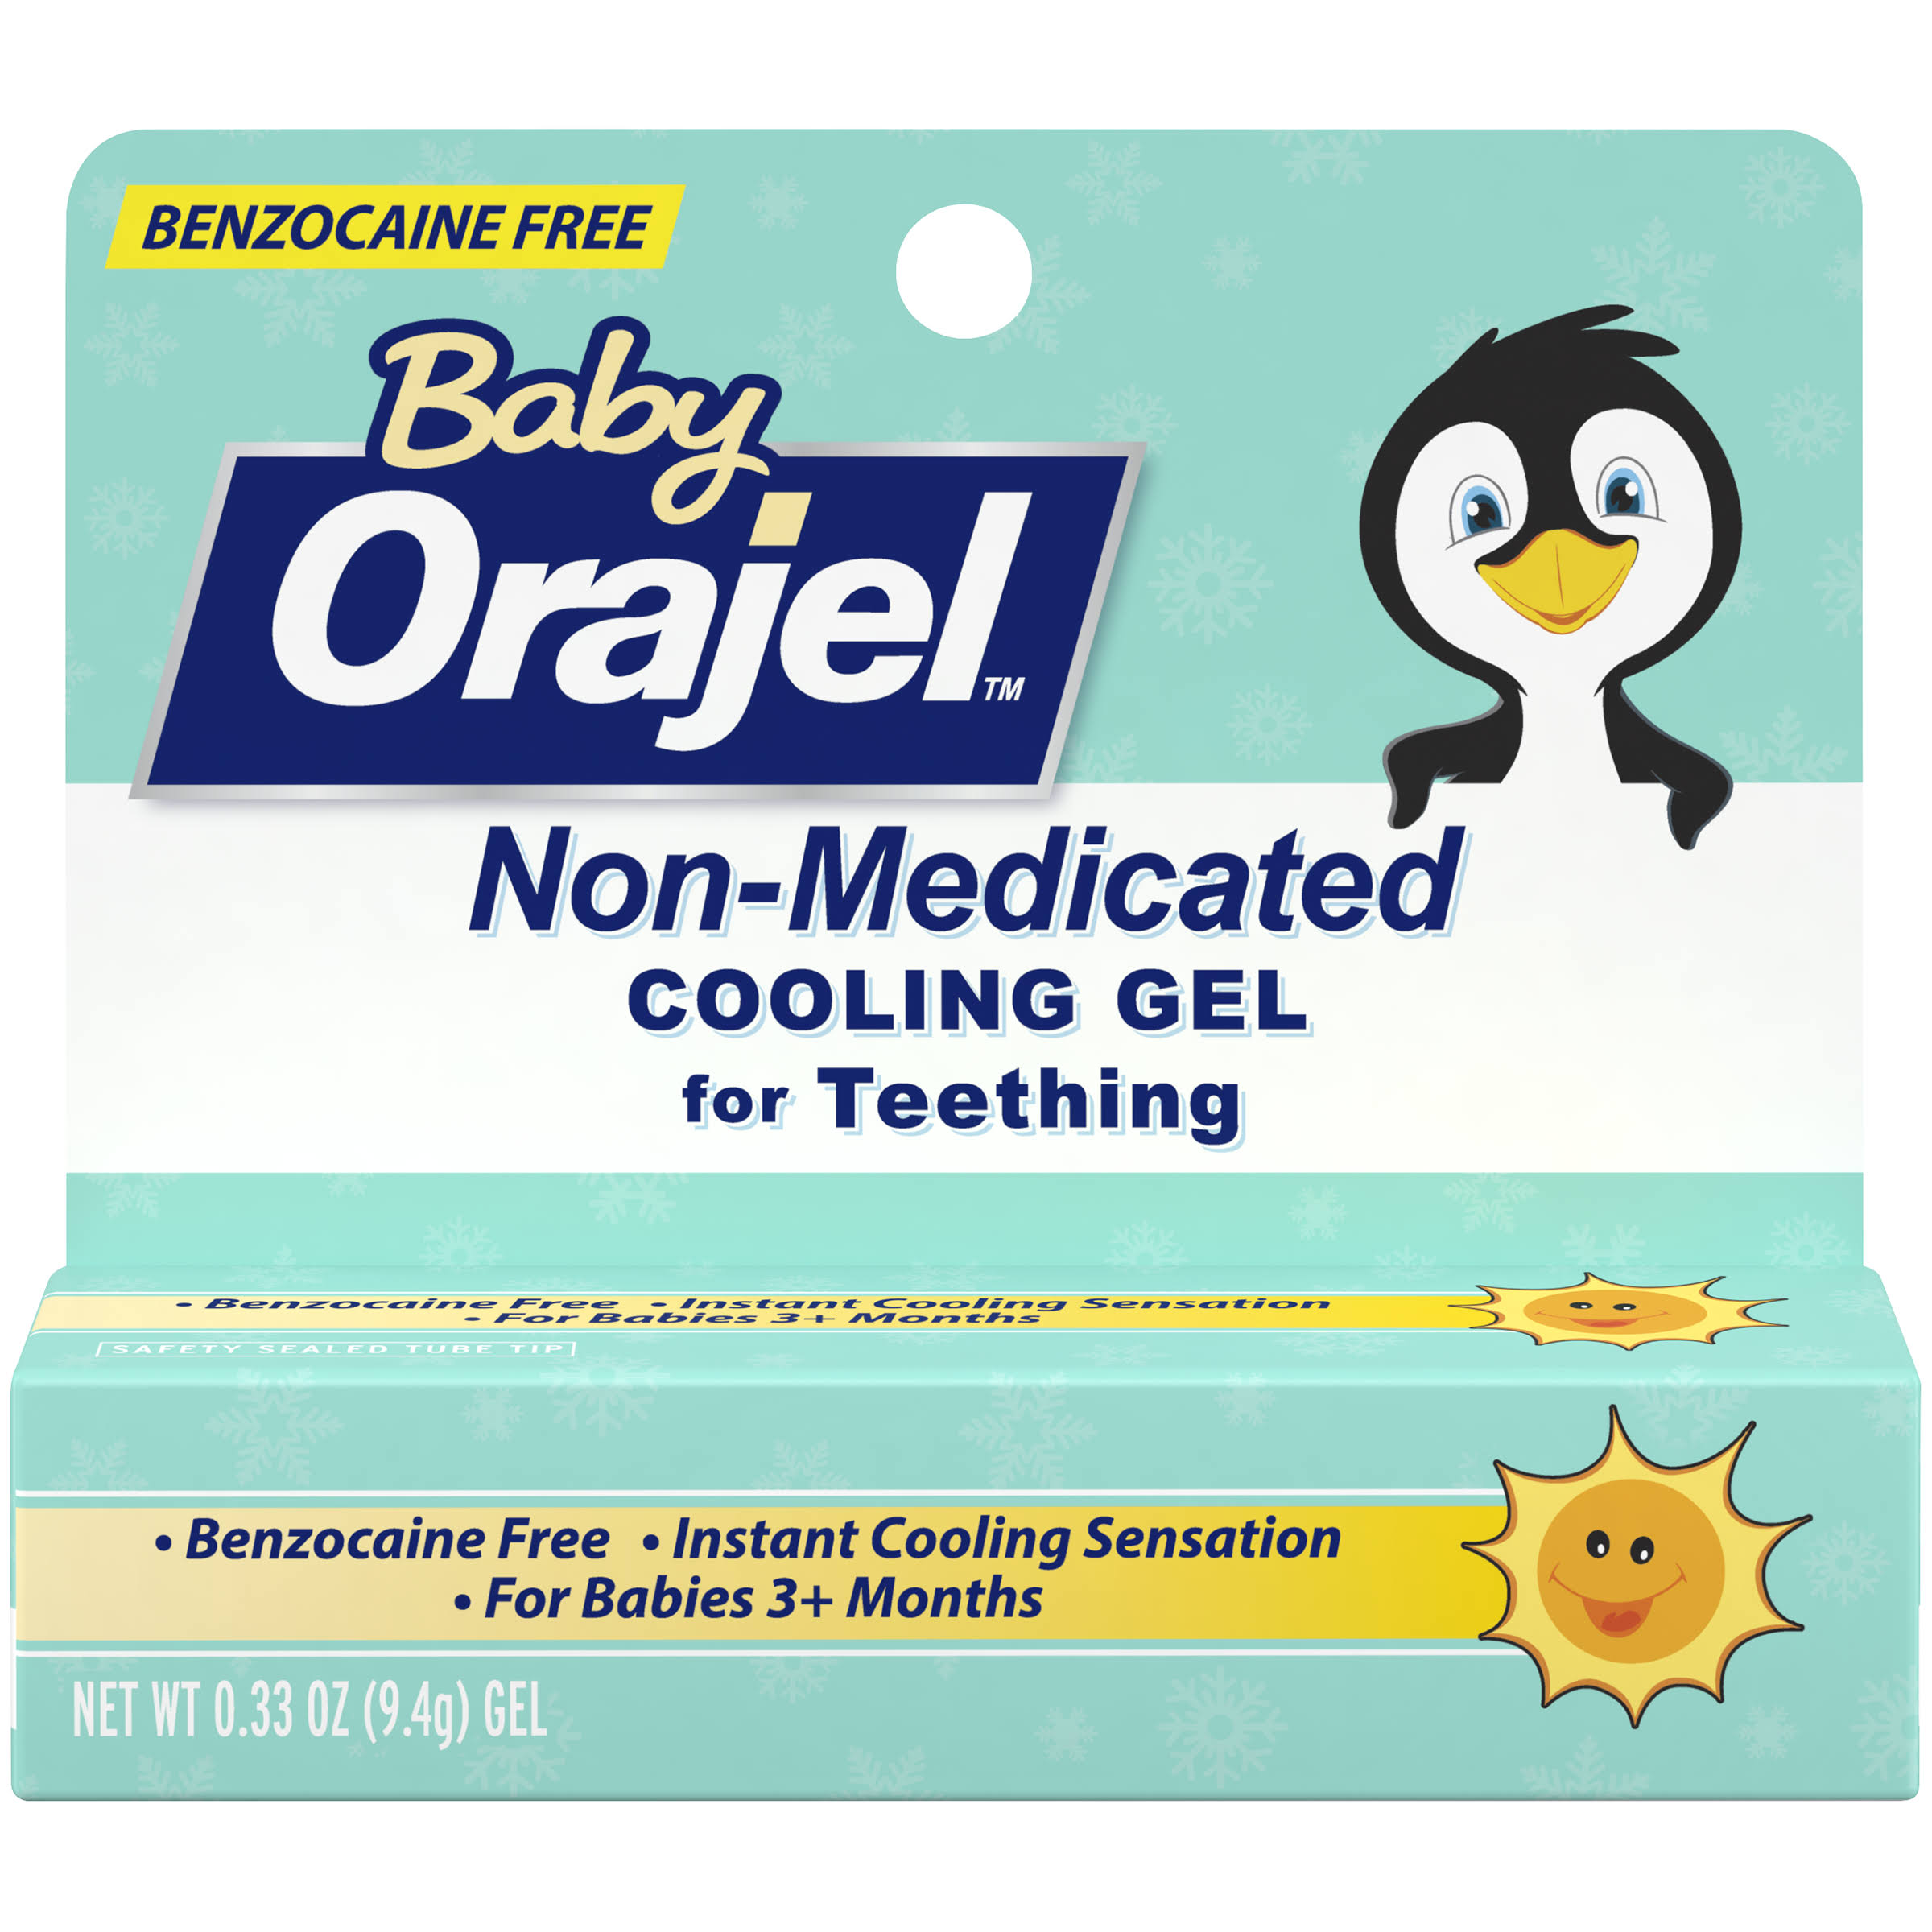 Baby Orajel Non-Medicated Cooling Gel for Teething - 0.33 oz